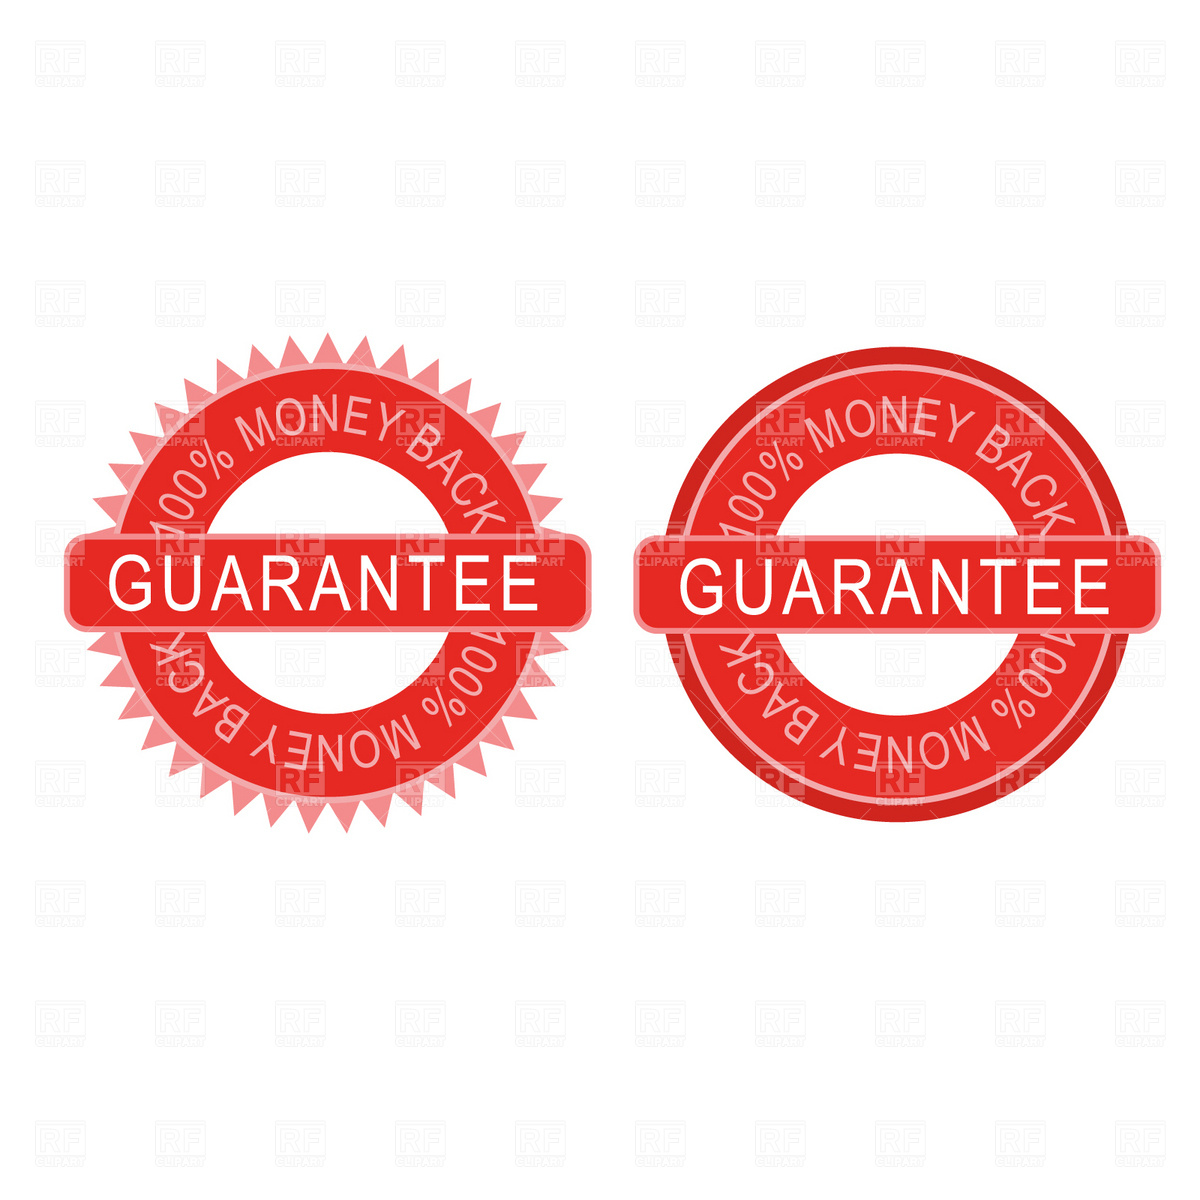 Guarantee badges Vector Image #1814.